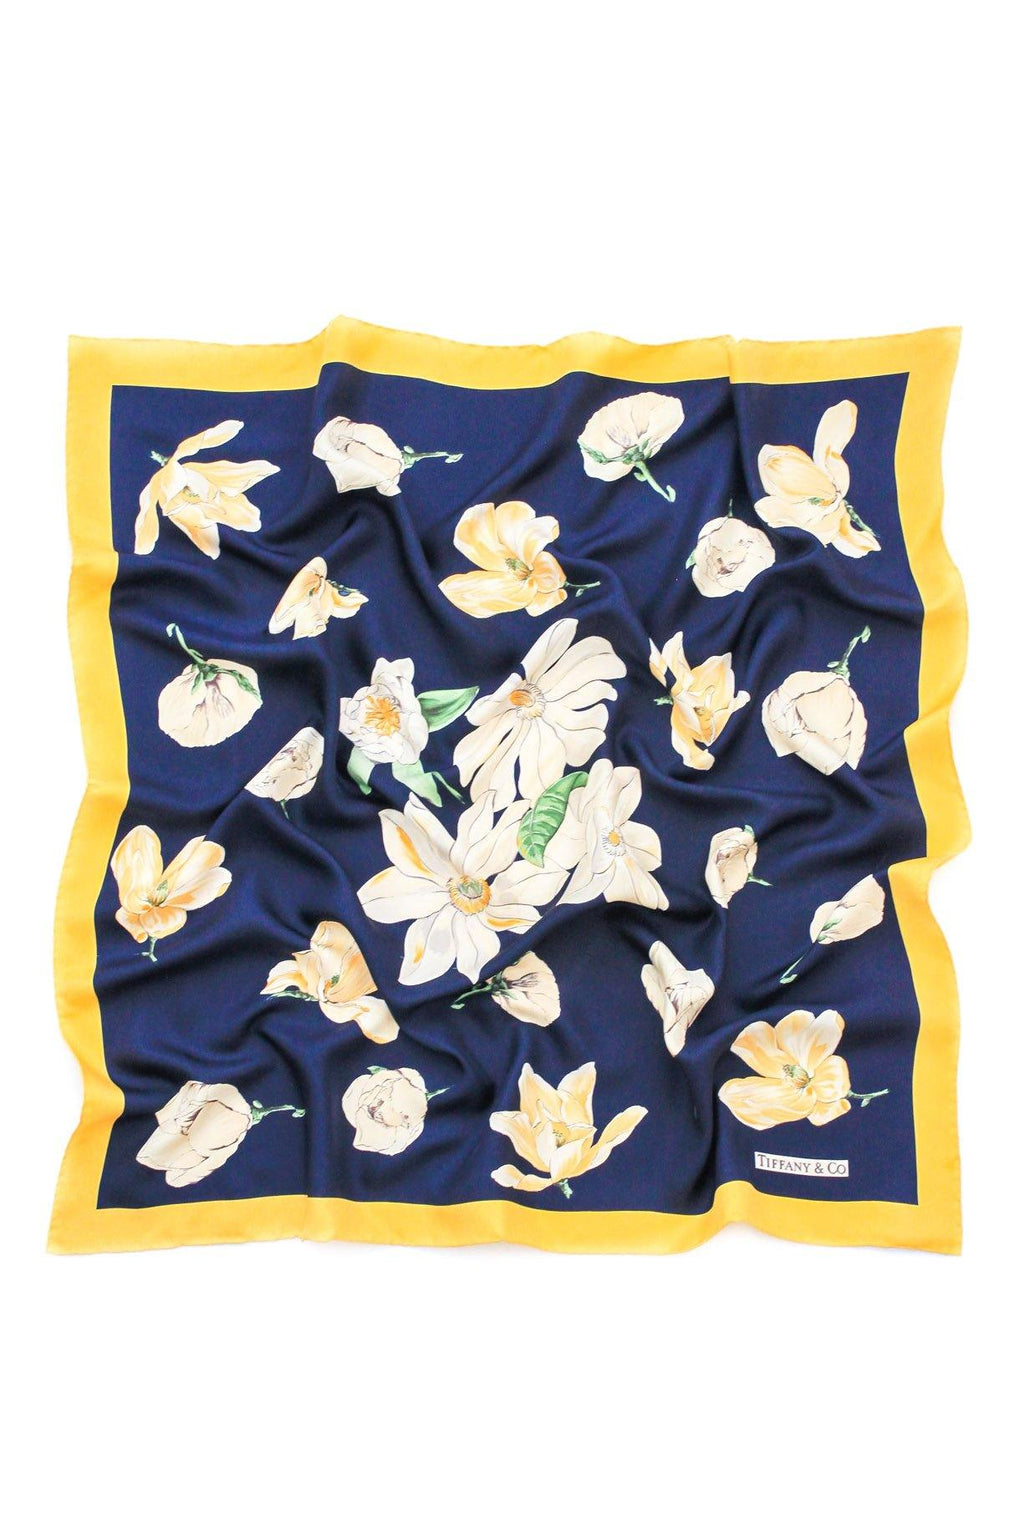 Tiffany & Co. Navy Florals Square Scarf